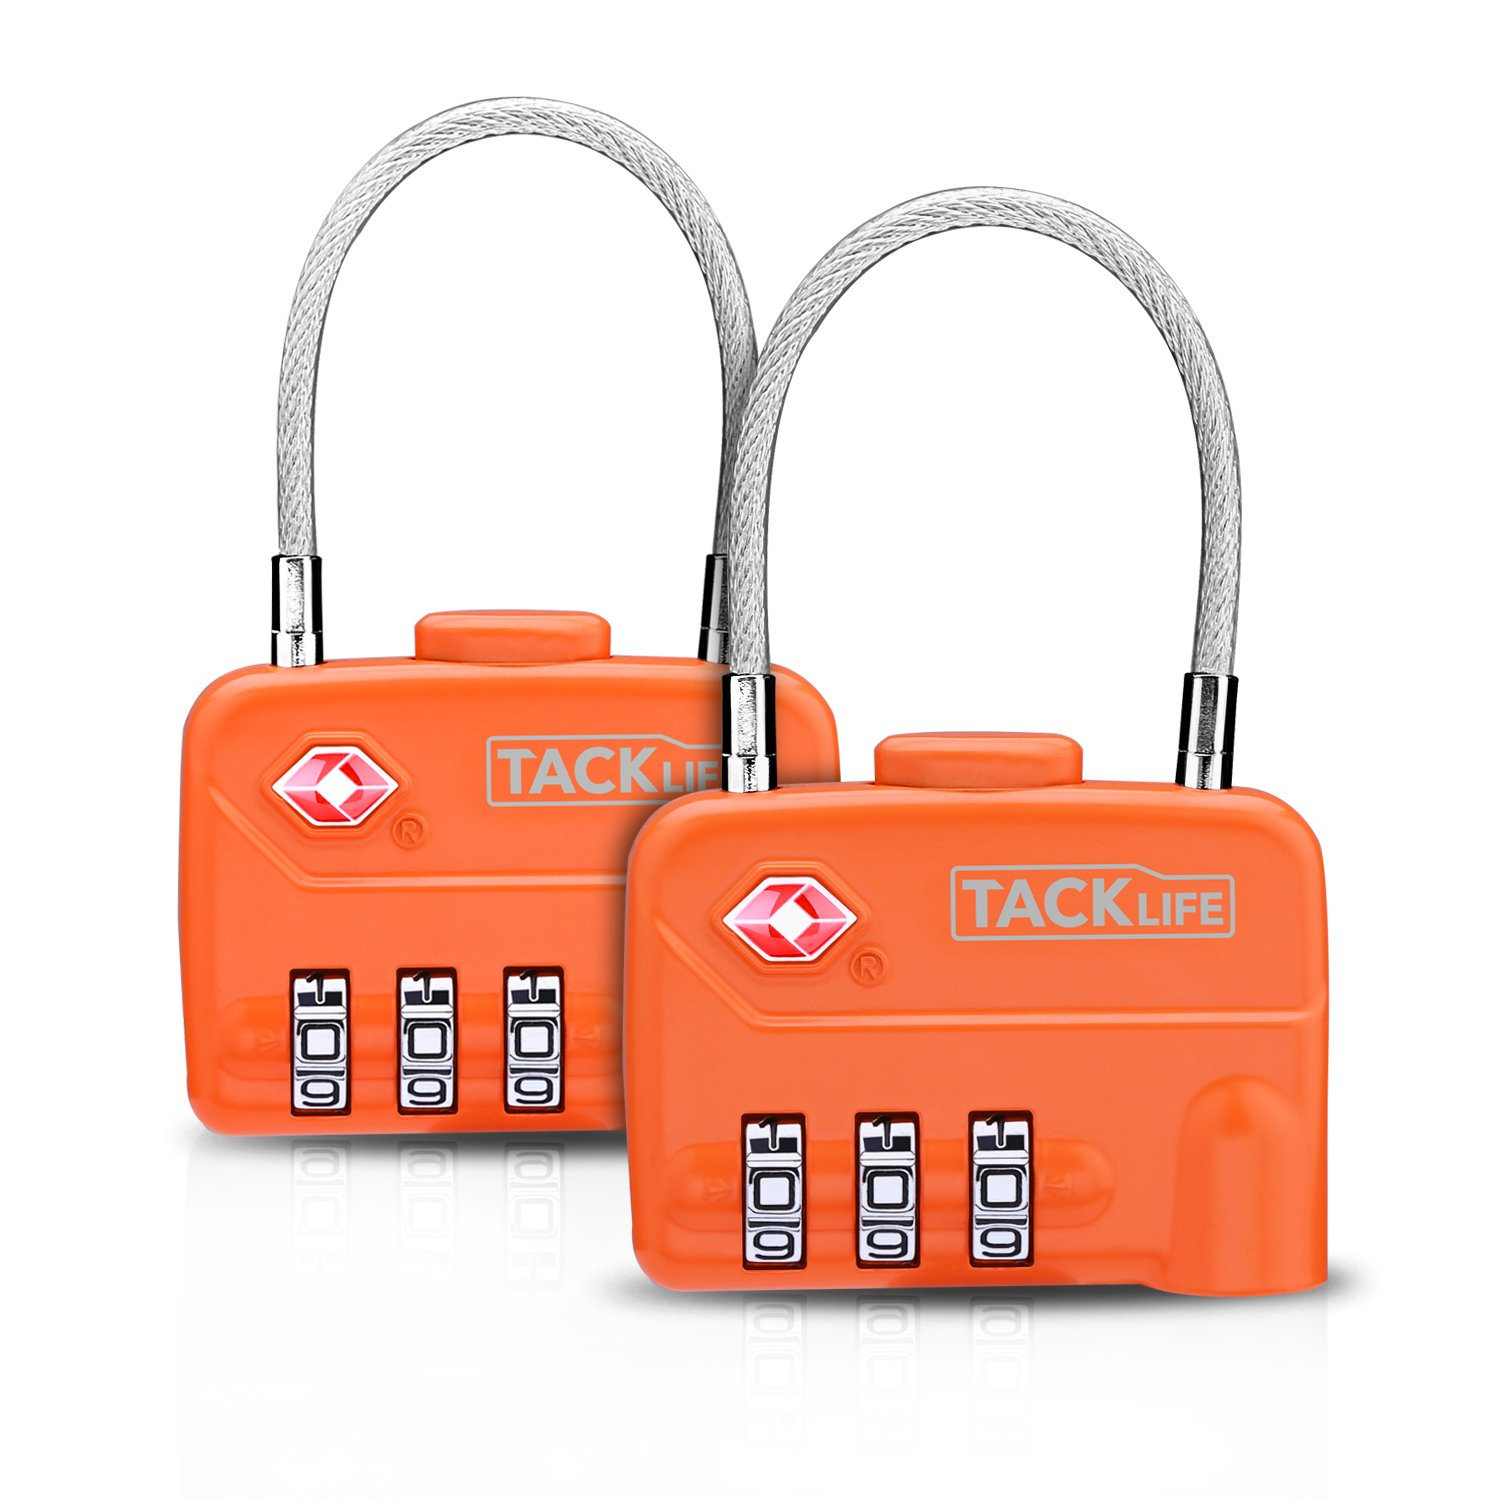 Luggage Locks, TACKLIFE HCL1A Cable Locks, TSA Approved Travel Locks, Flexible Locks, 3Digit Combination Locks for Gym, School, Locker, Outdoor, Fence, Suitcase & Baggage - Orange by TACKLIFE (Image #1)